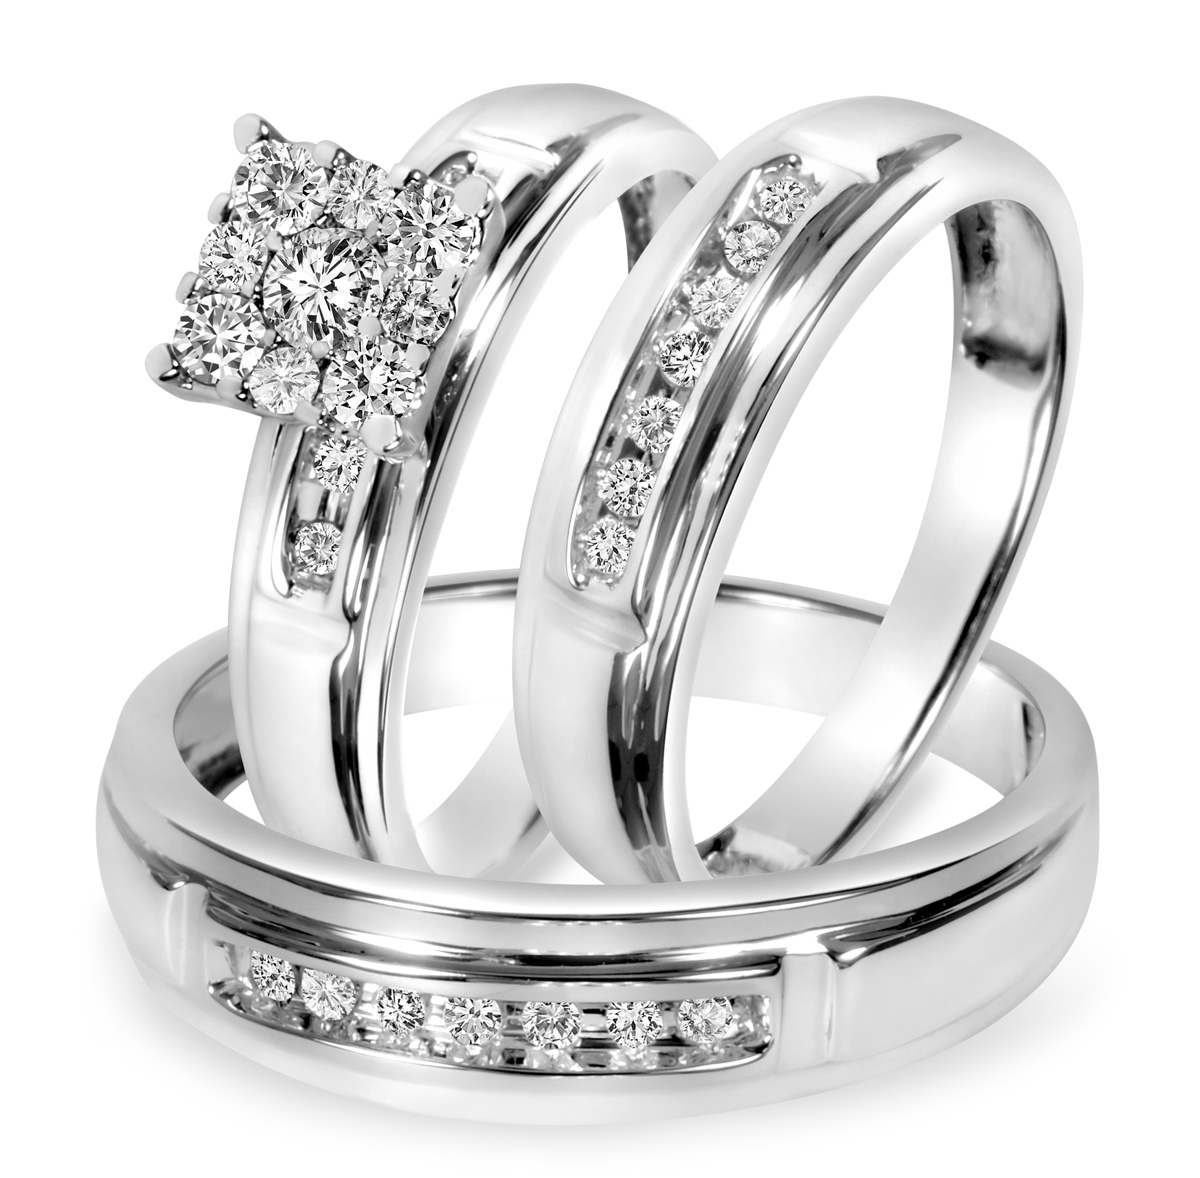 1 2 ct tw diamond trio matching wedding ring set 10k for Wedding ring sets white gold